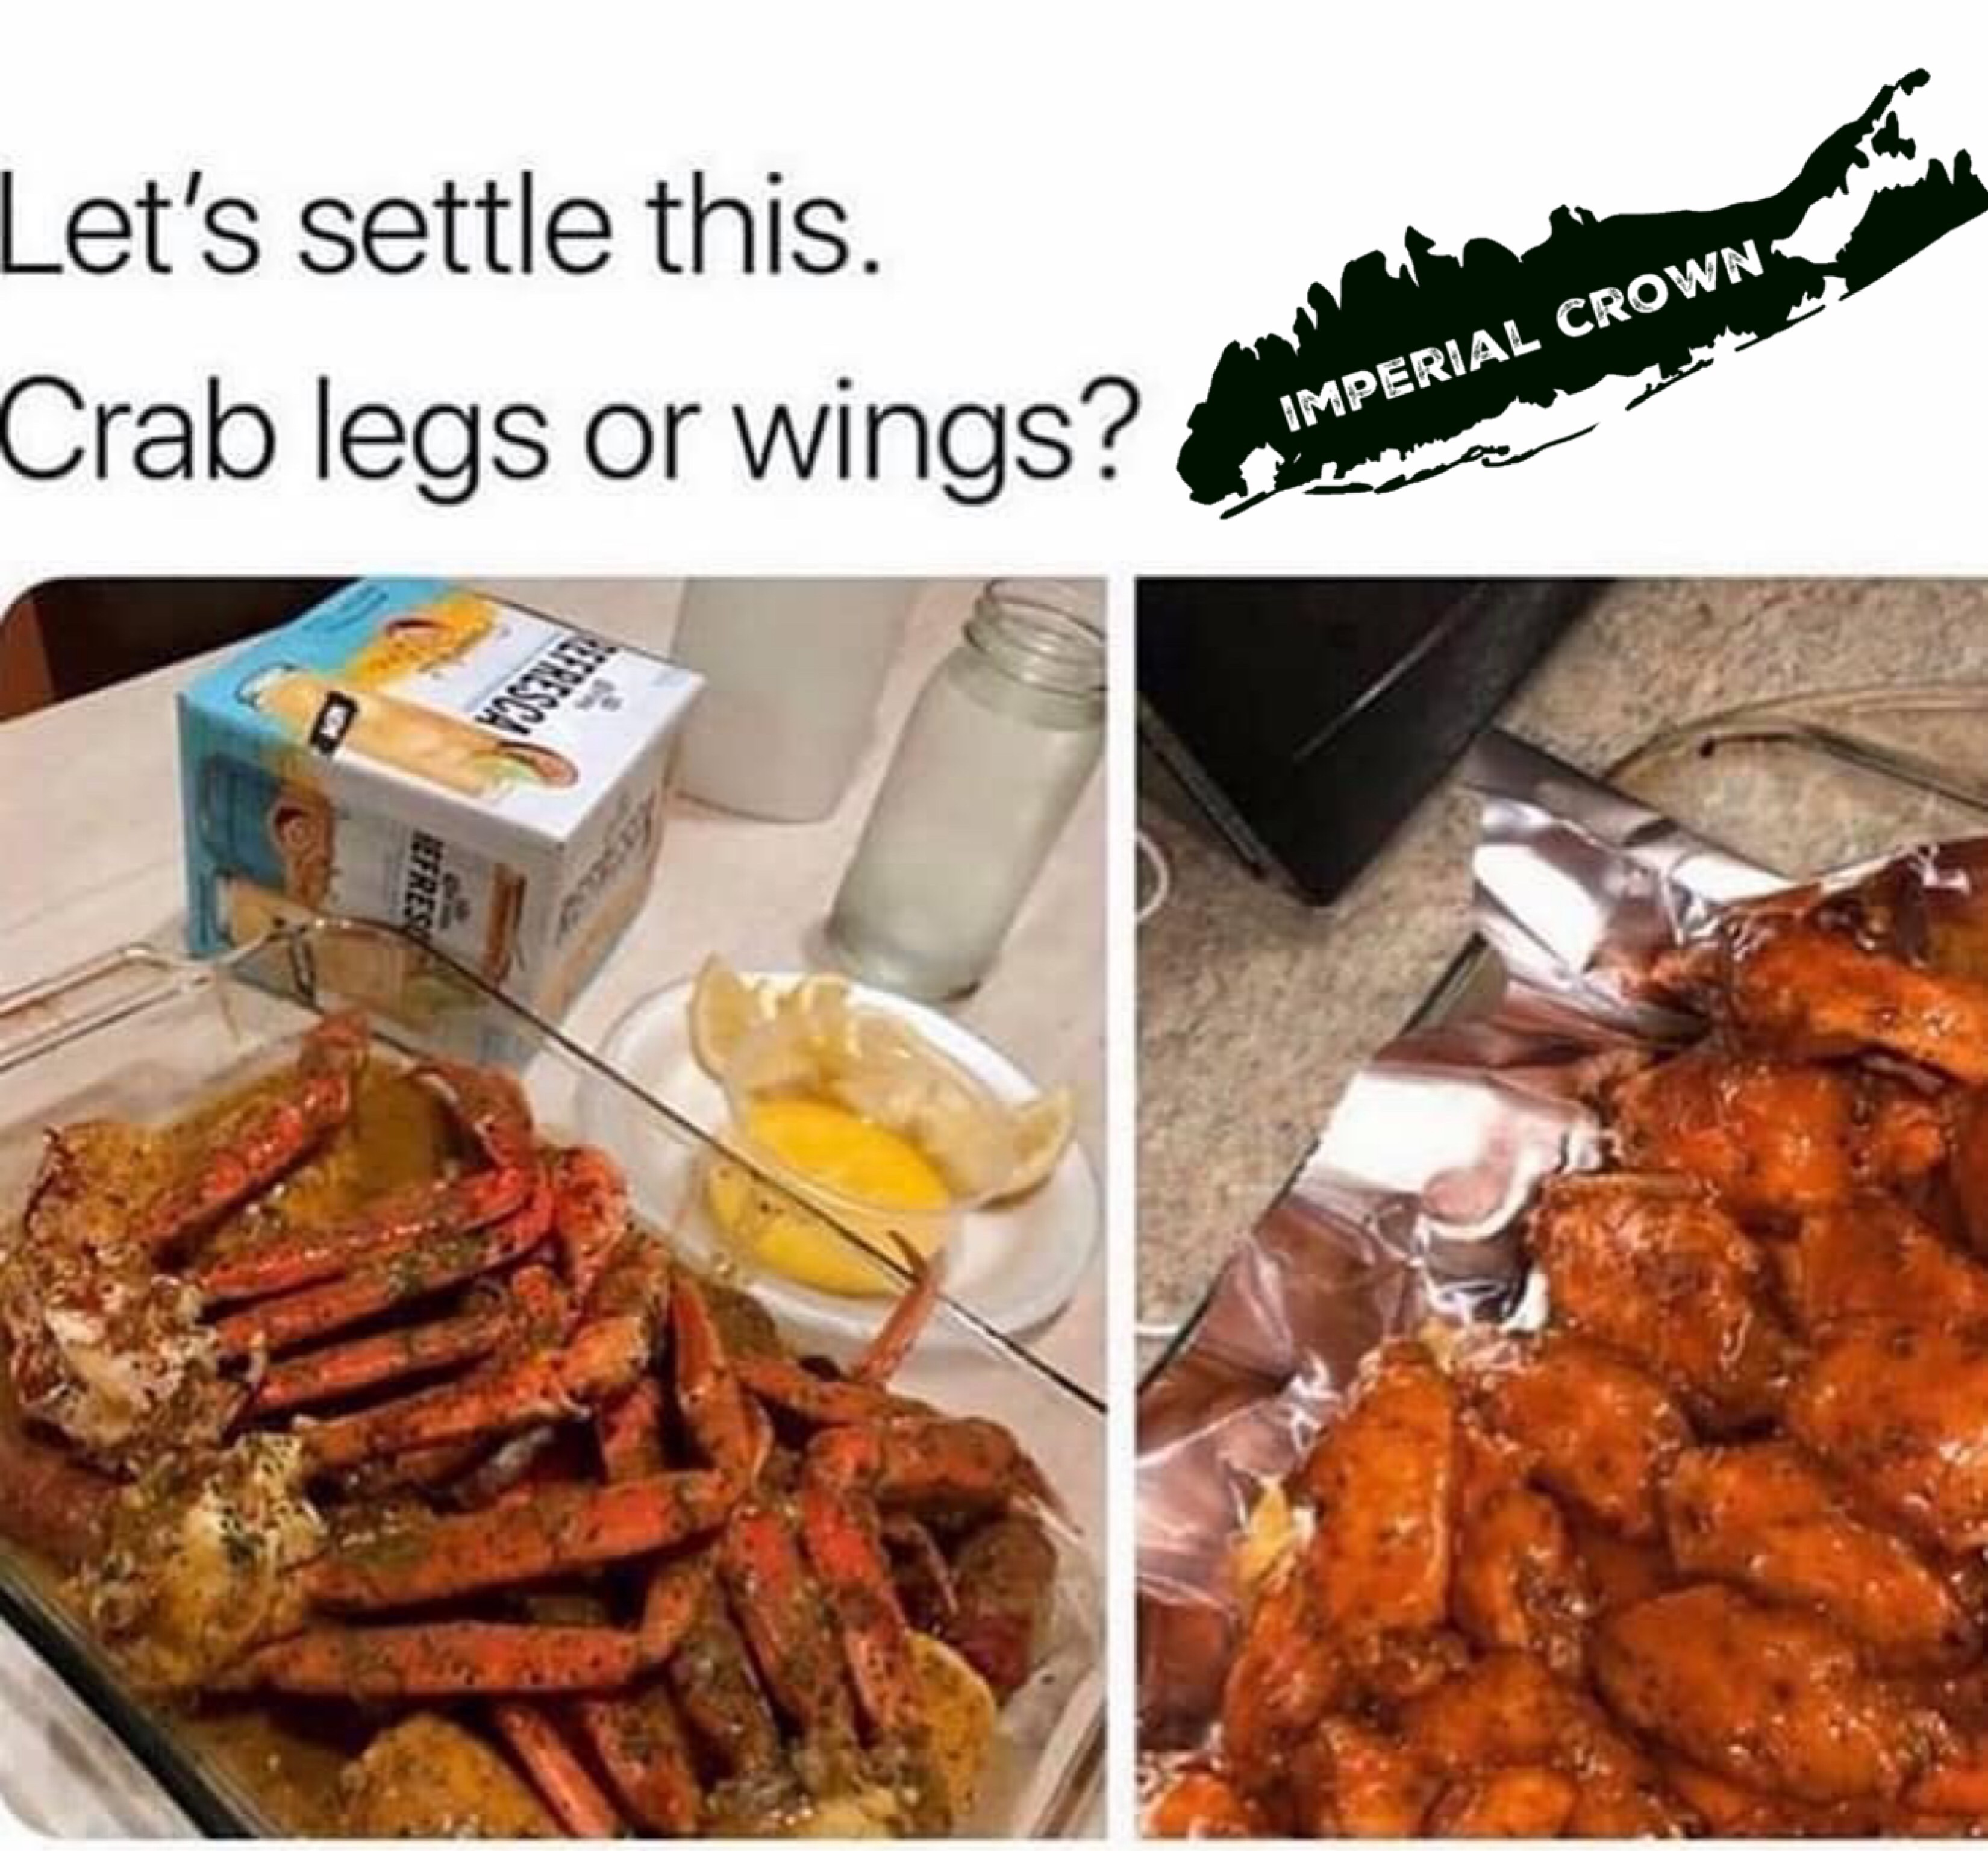 Let's settle this crab legs or wings